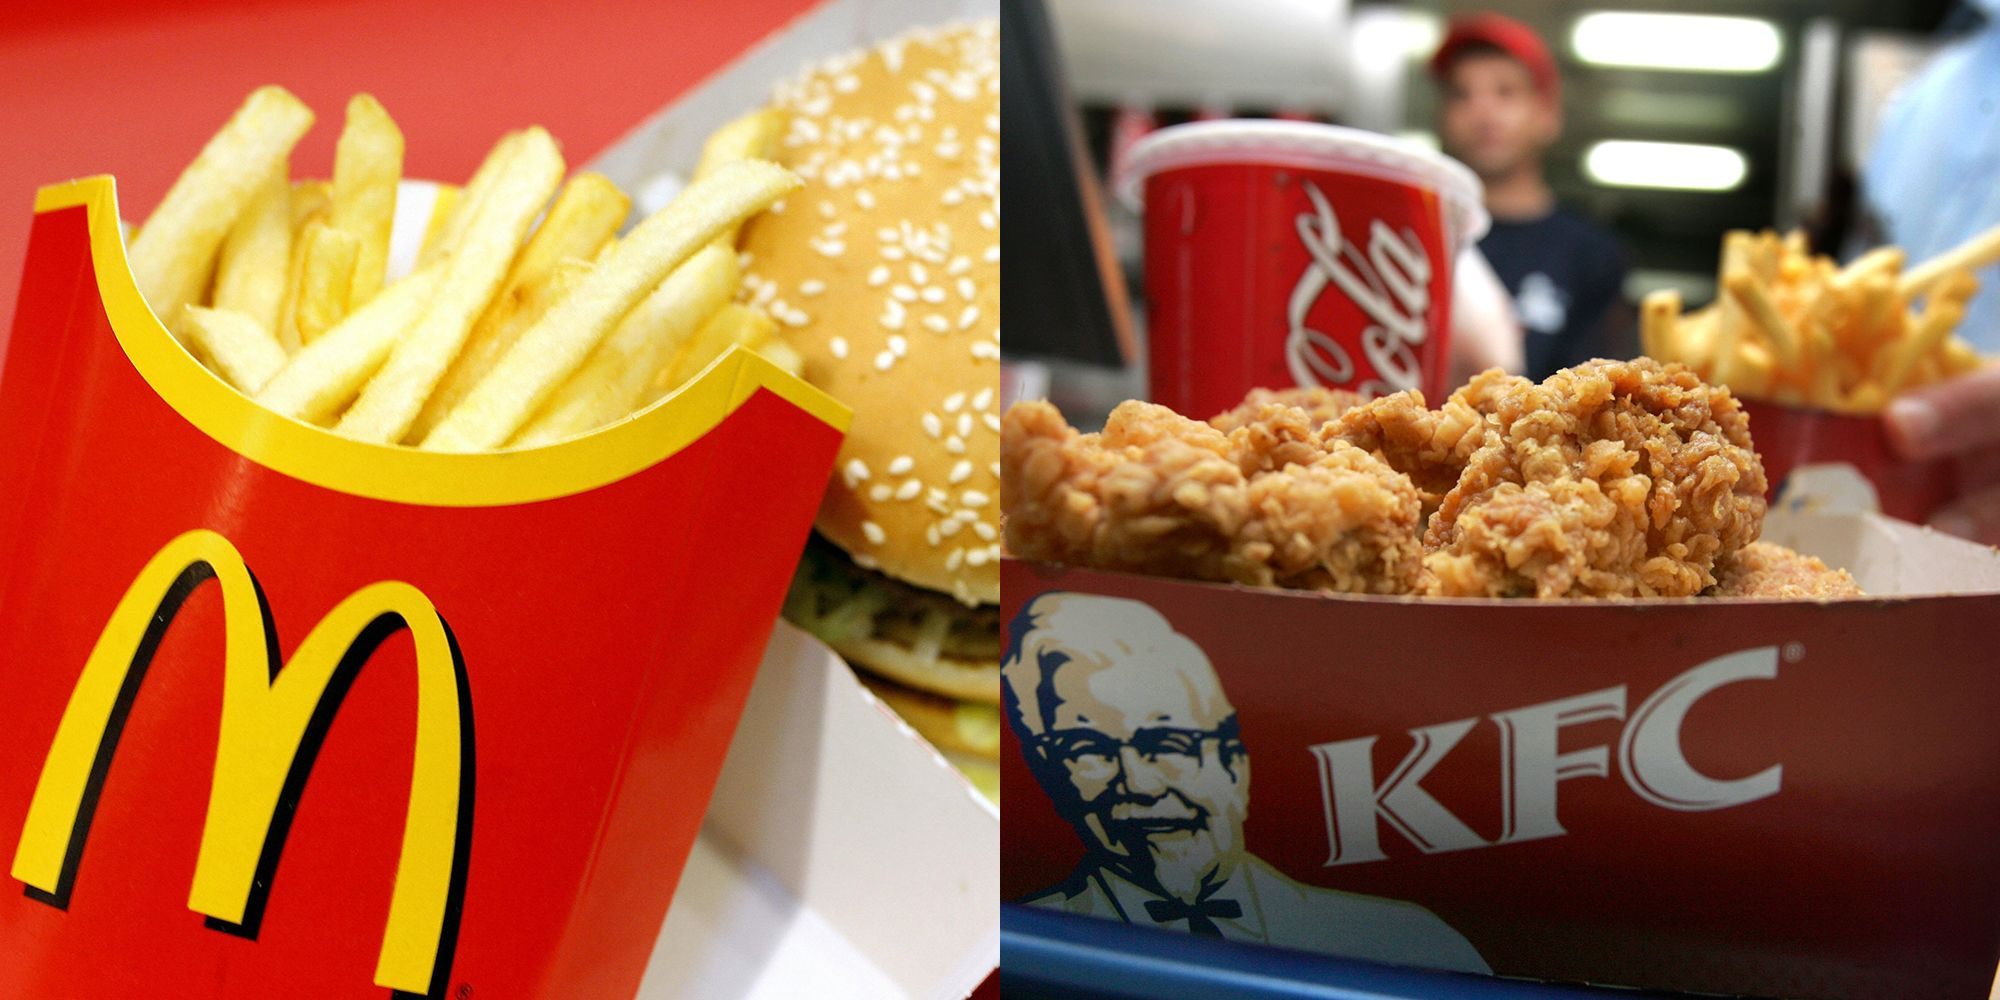 KFC and McDonald's may soon be forced to calorie cap their ...